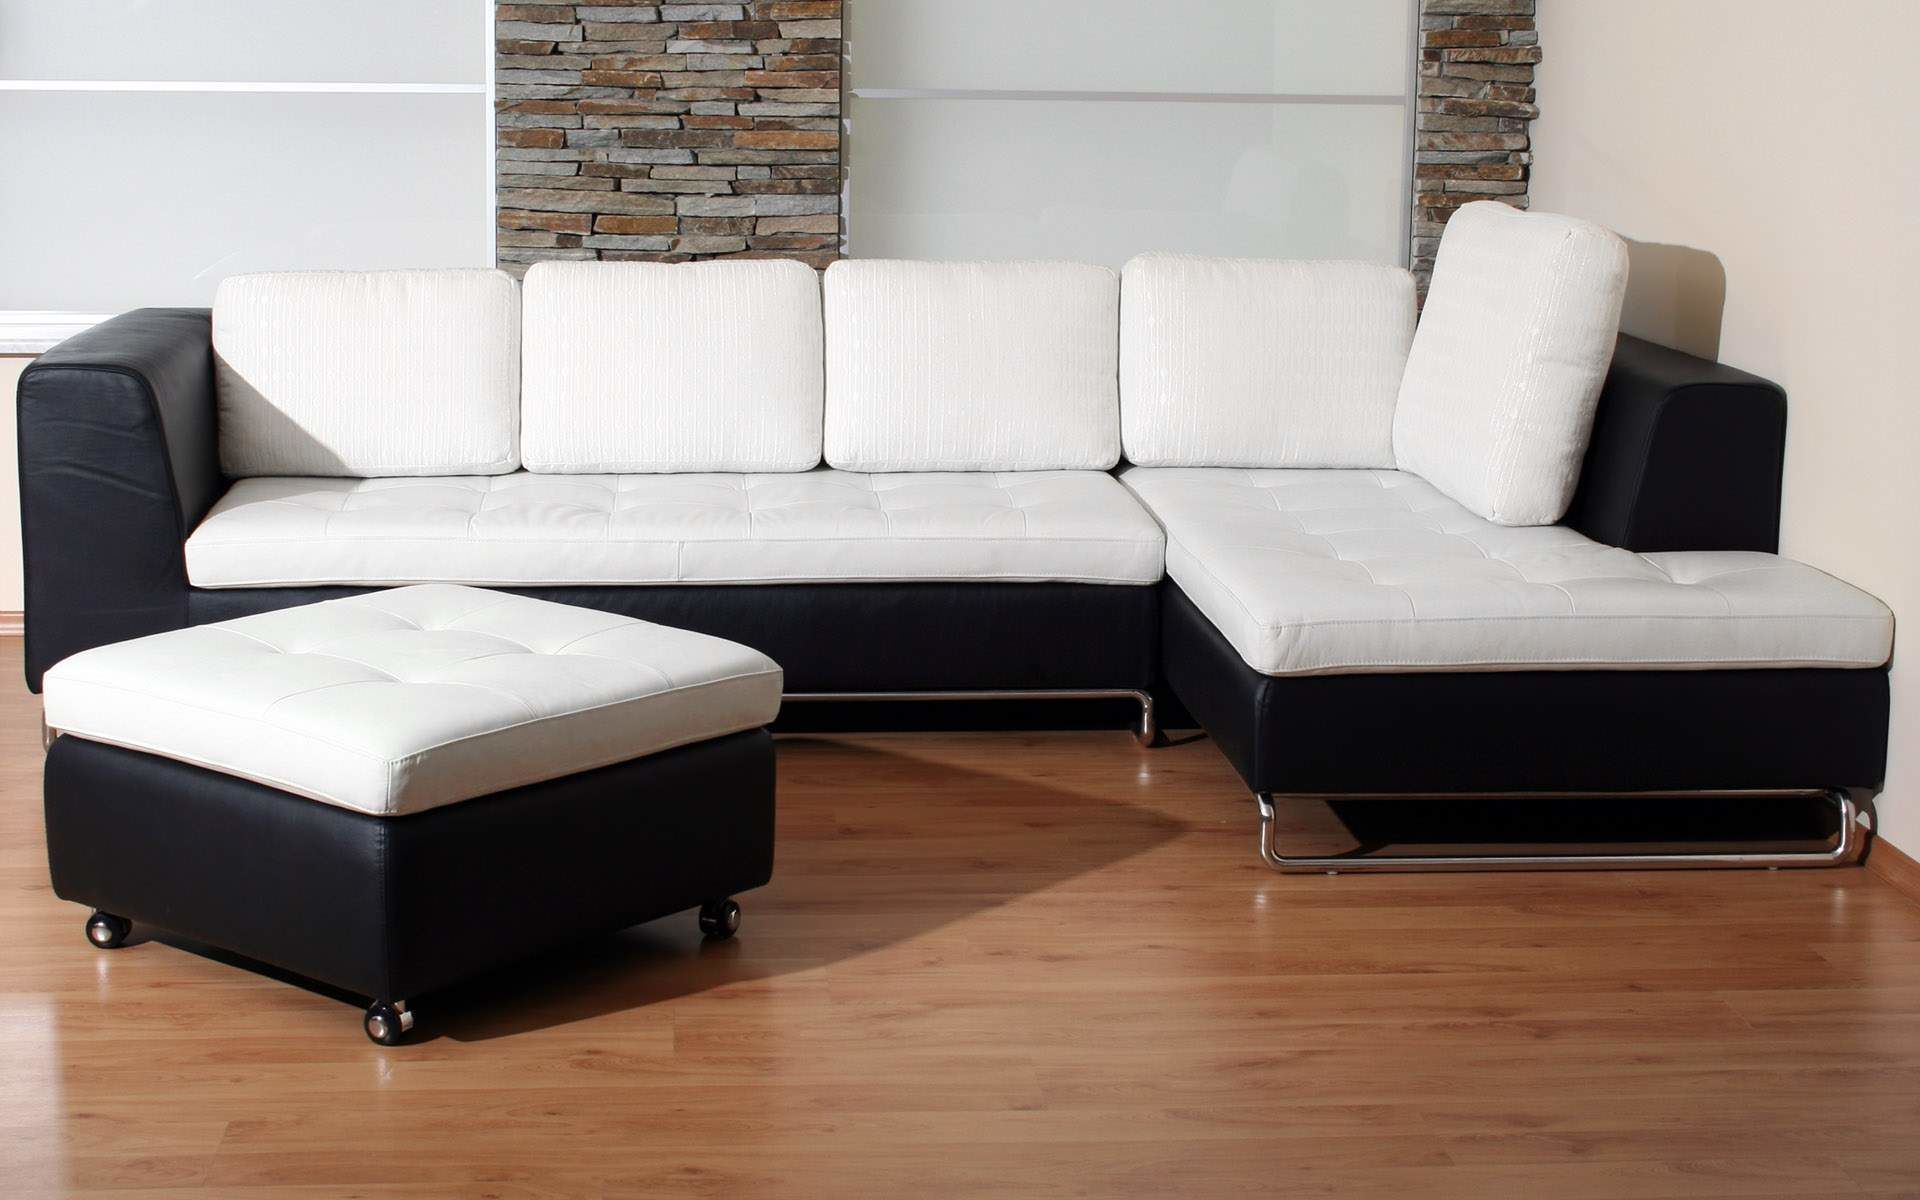 beautiful sofas for small rooms plan-Incredible sofas for Small Rooms Concept